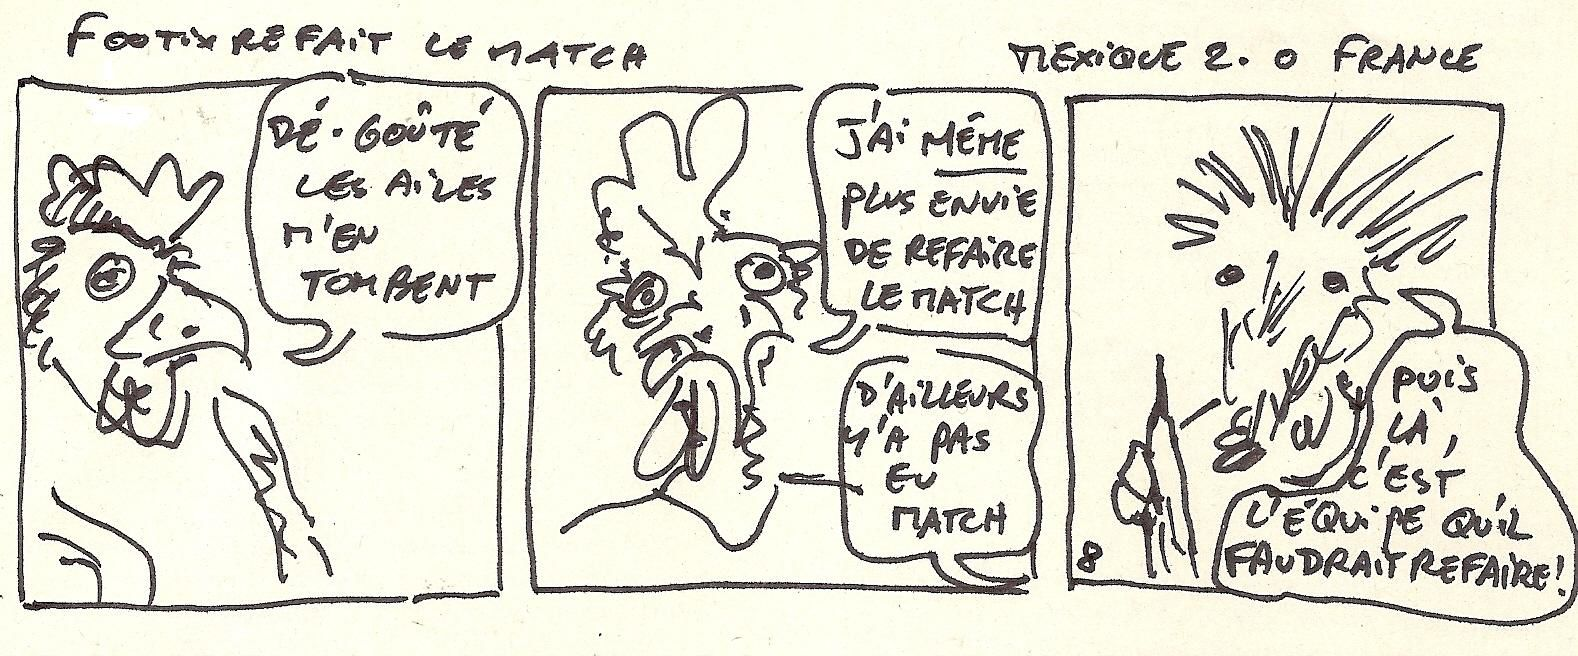 Footix refait le match 8